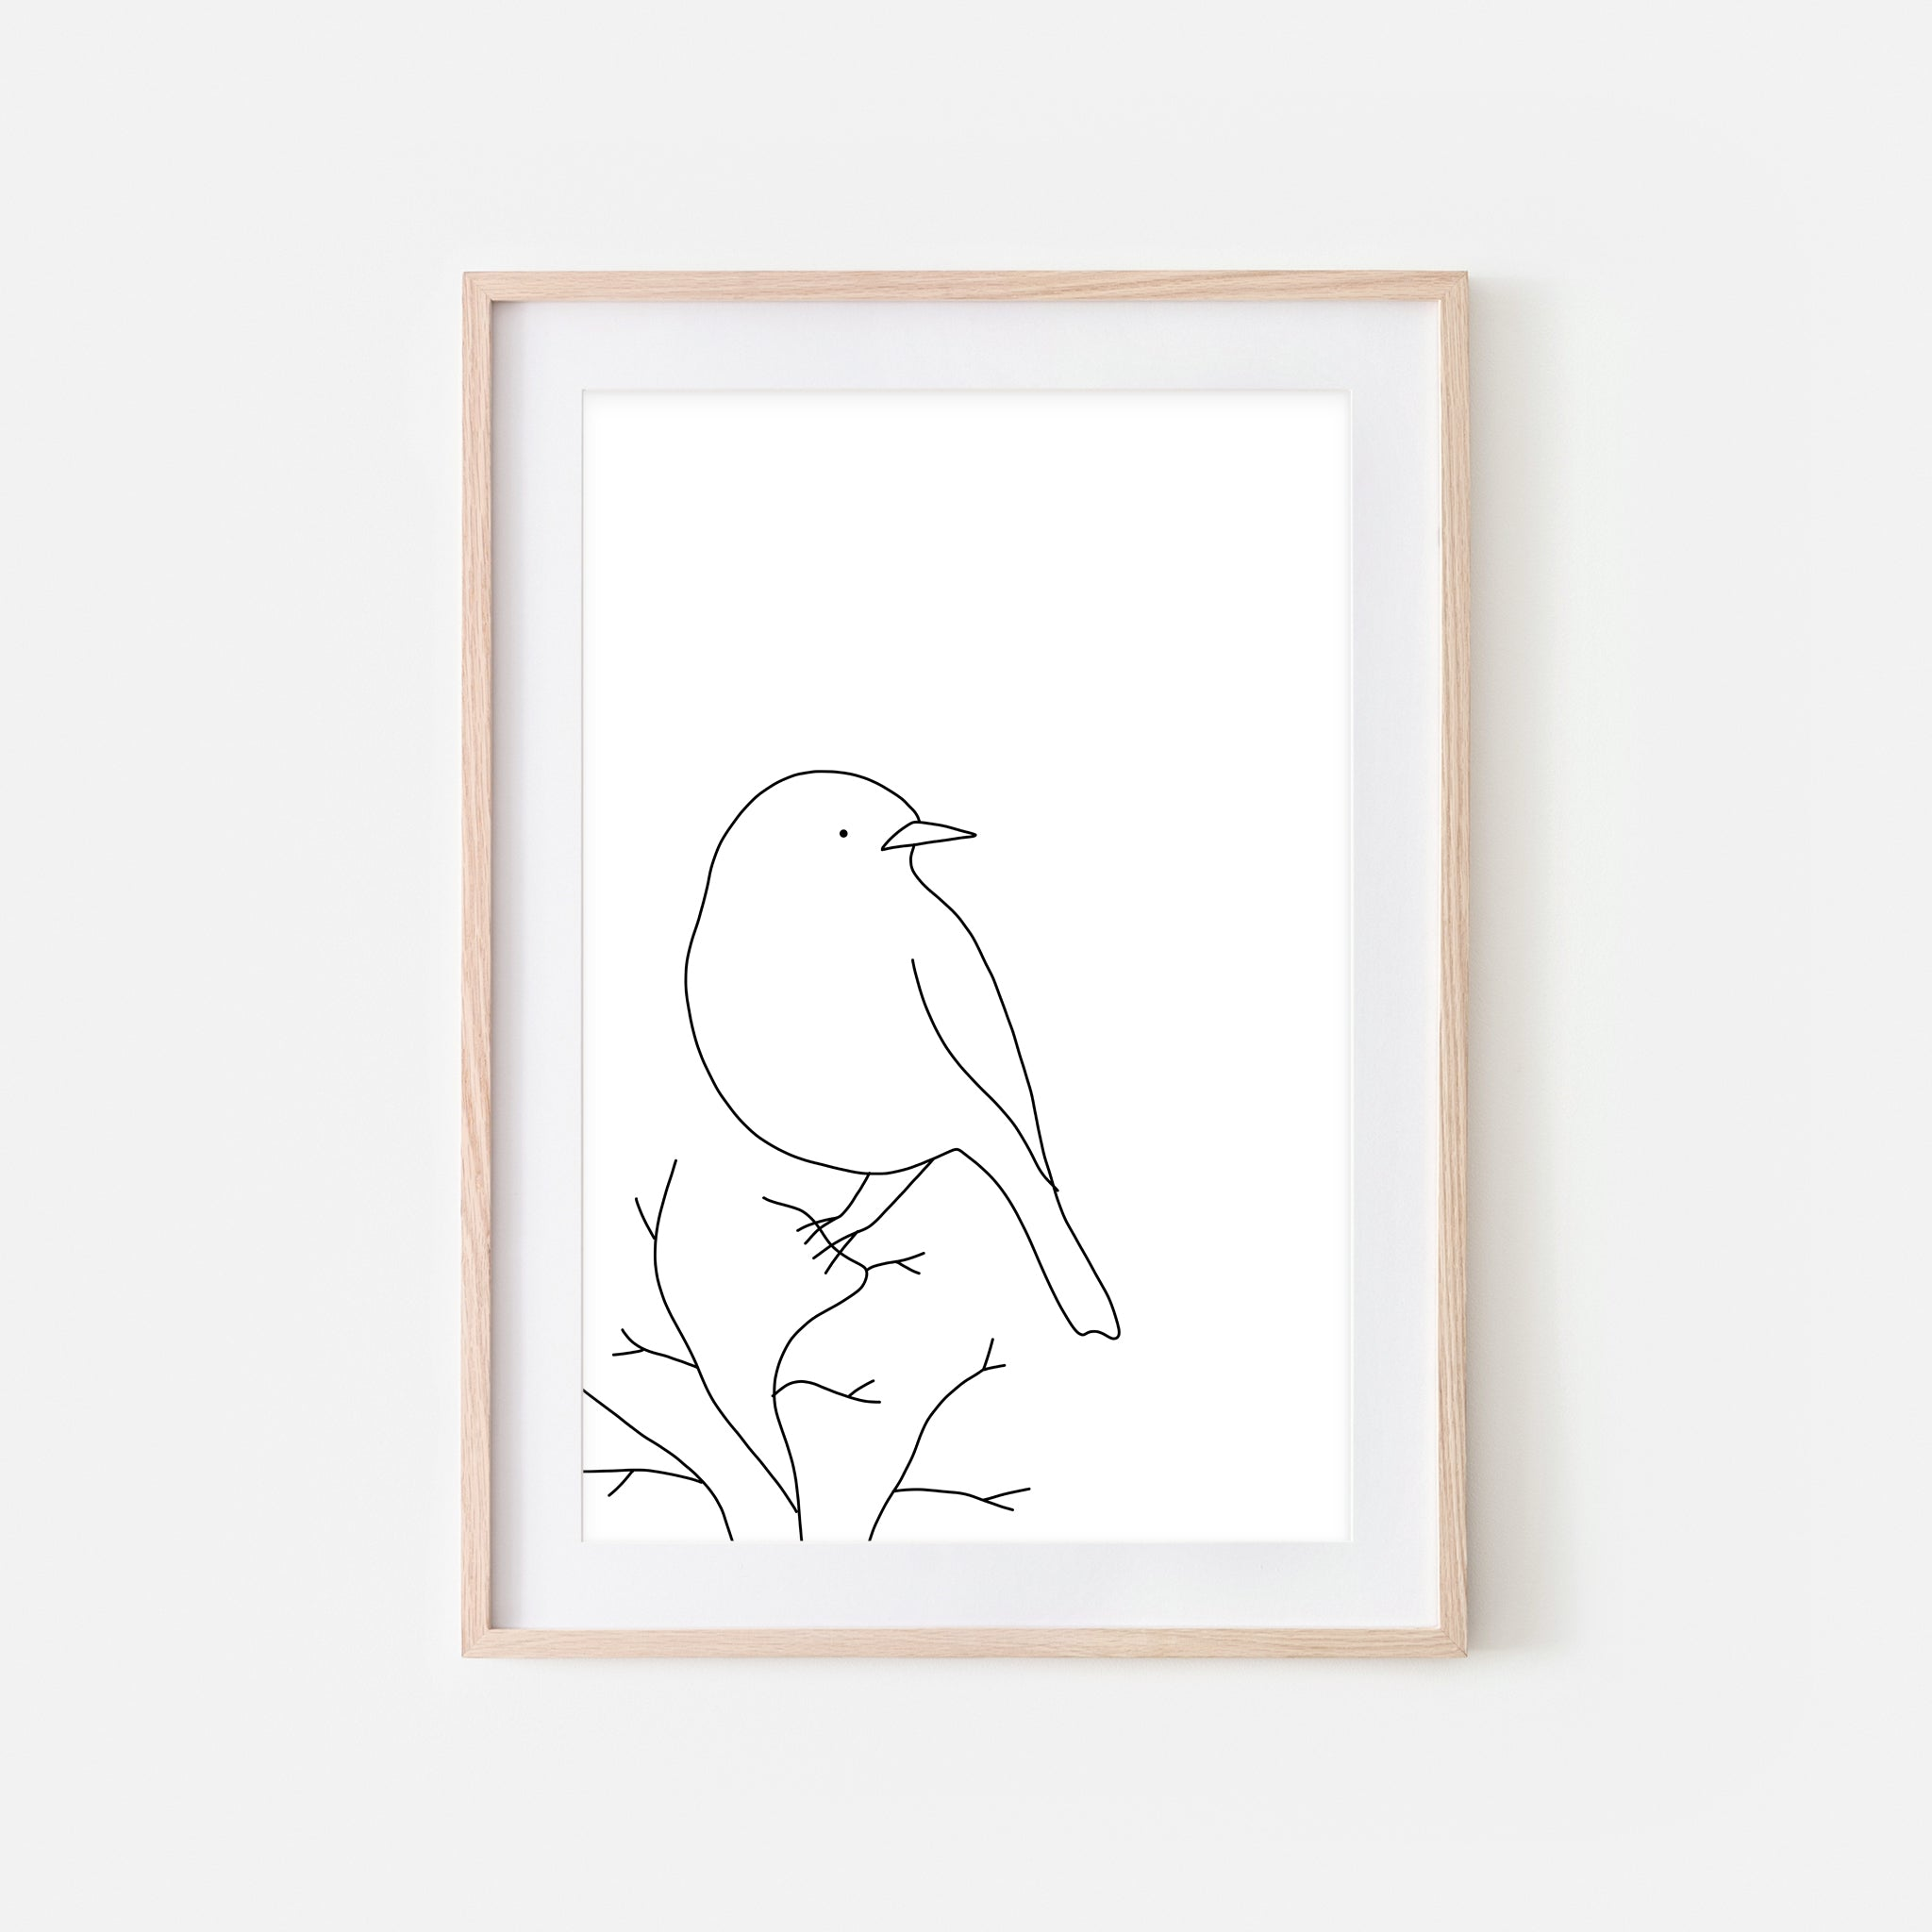 Bird on a Branch Wall Art No. 10 - Black and White Line Drawing - Print, Poster or Printable Download